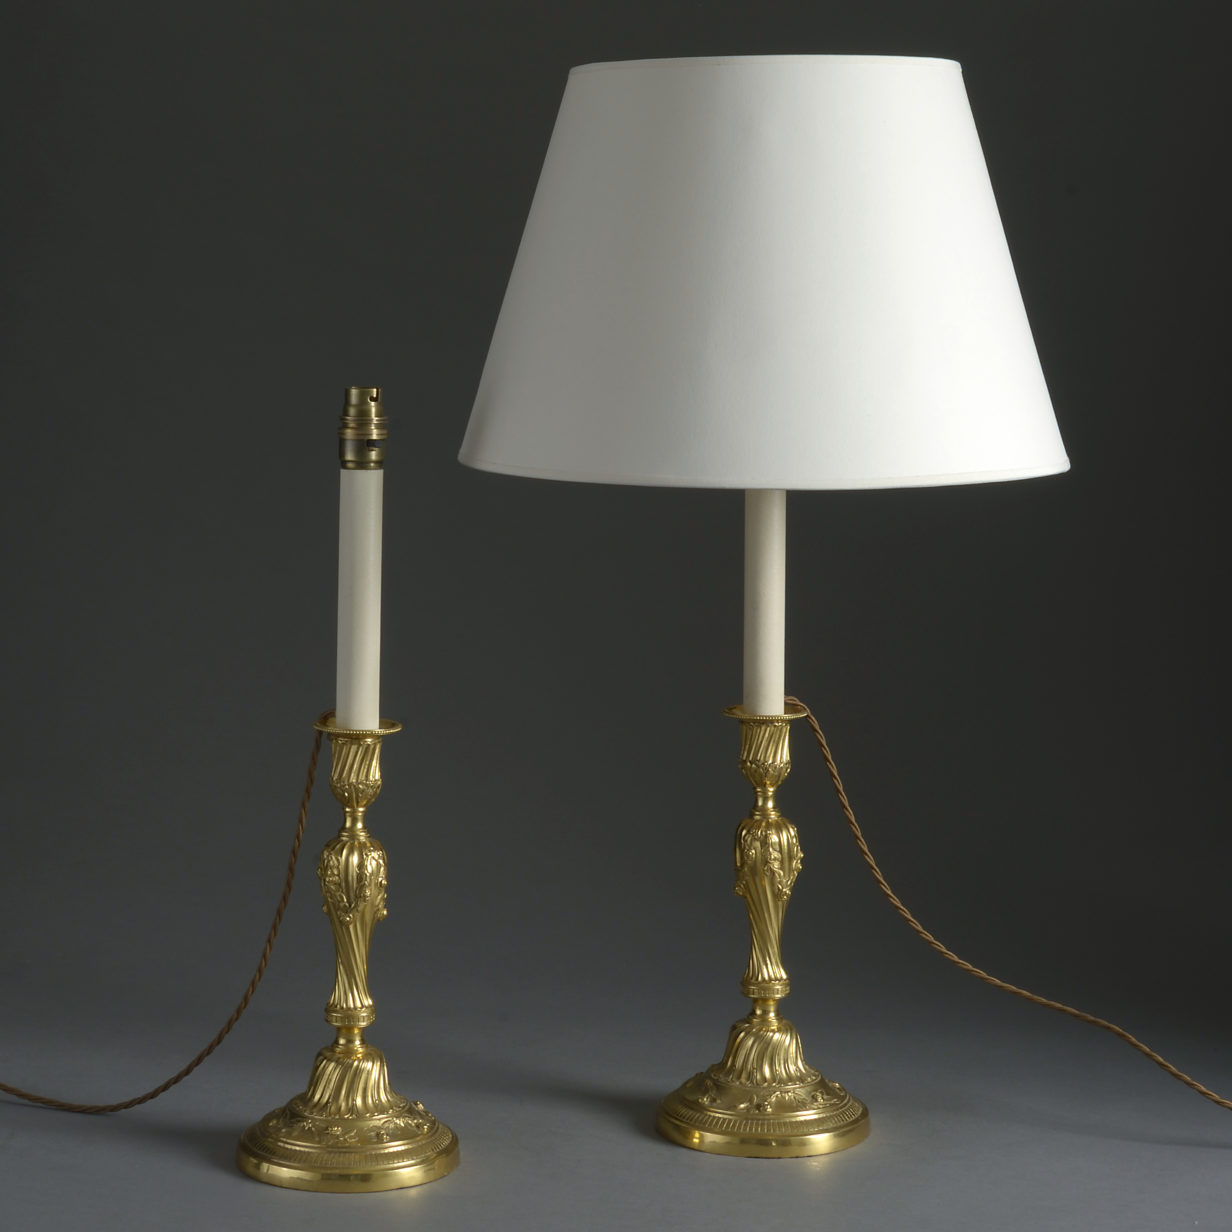 Pair of Rococo Candlestick Lamps